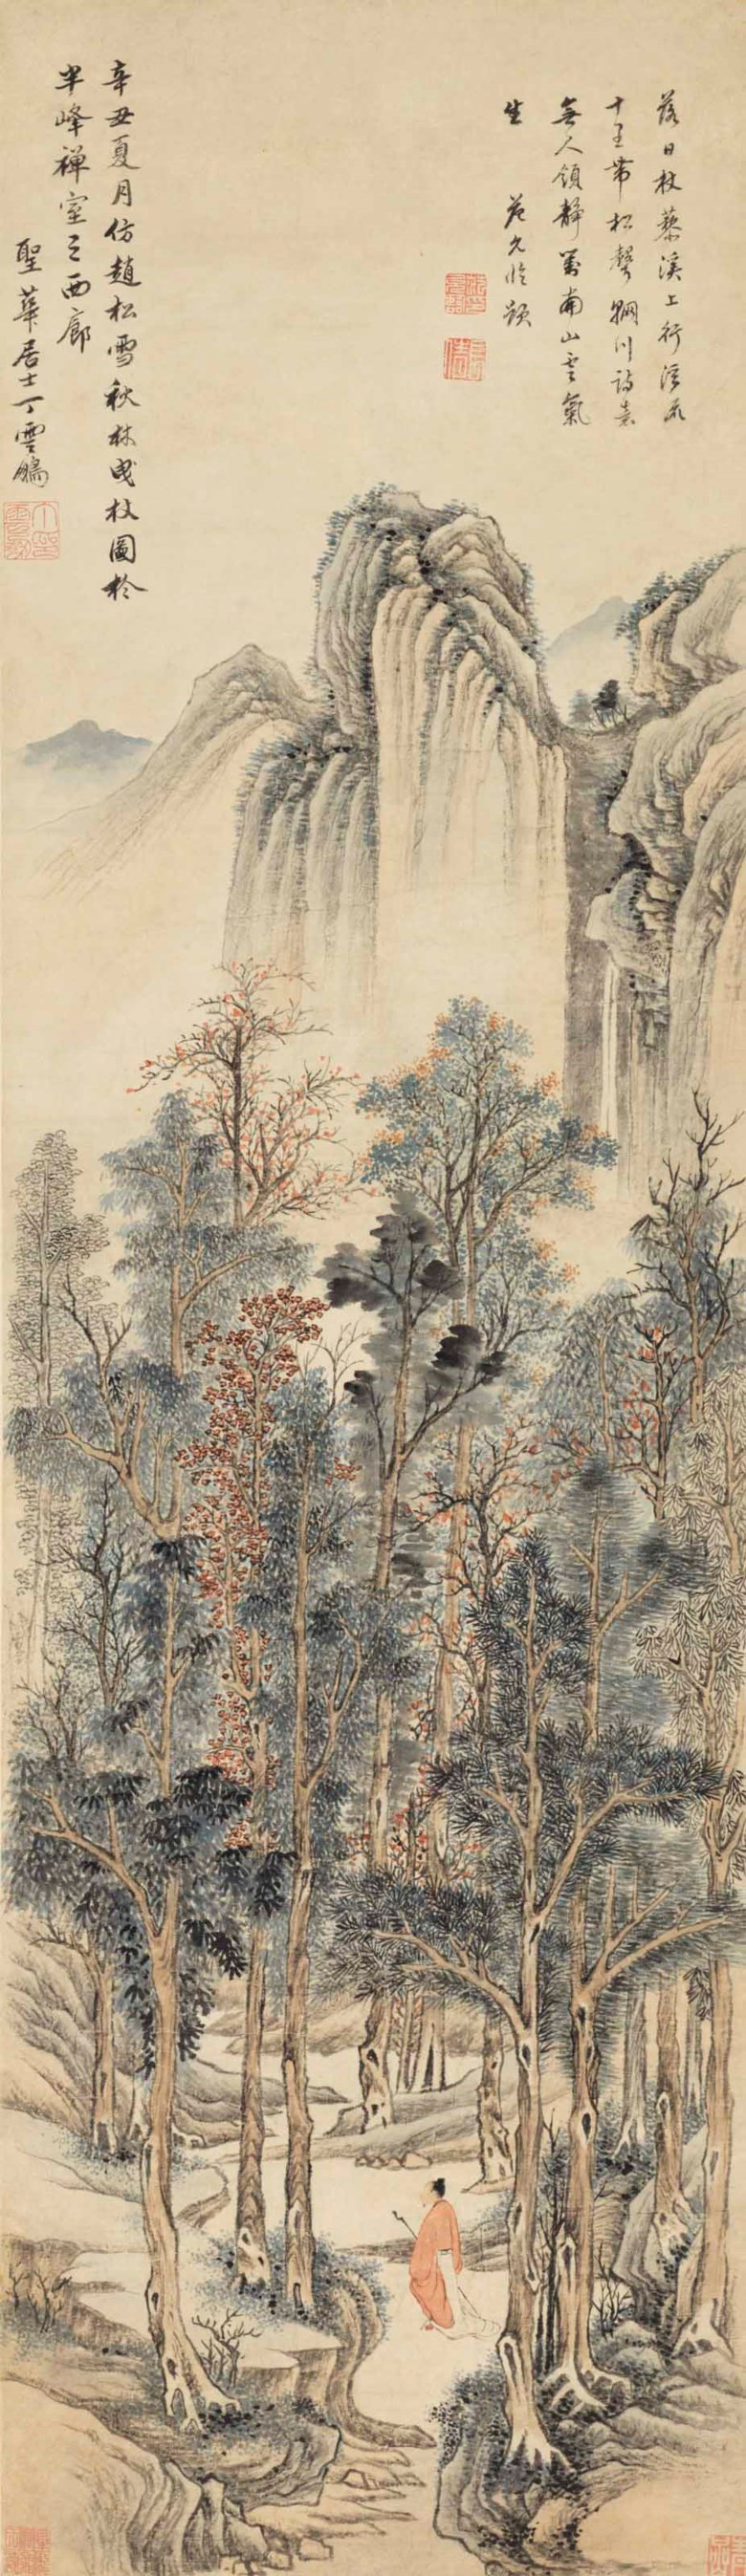 Ding Yunpeng (1547-After 1628), Scholar in Autumn Forest. Dated summer, xinchou year (1601). Estimate $150,000-300,000. This lot is offered in Fine Chinese Paintings on 20 March 2018  at Christie's in New York